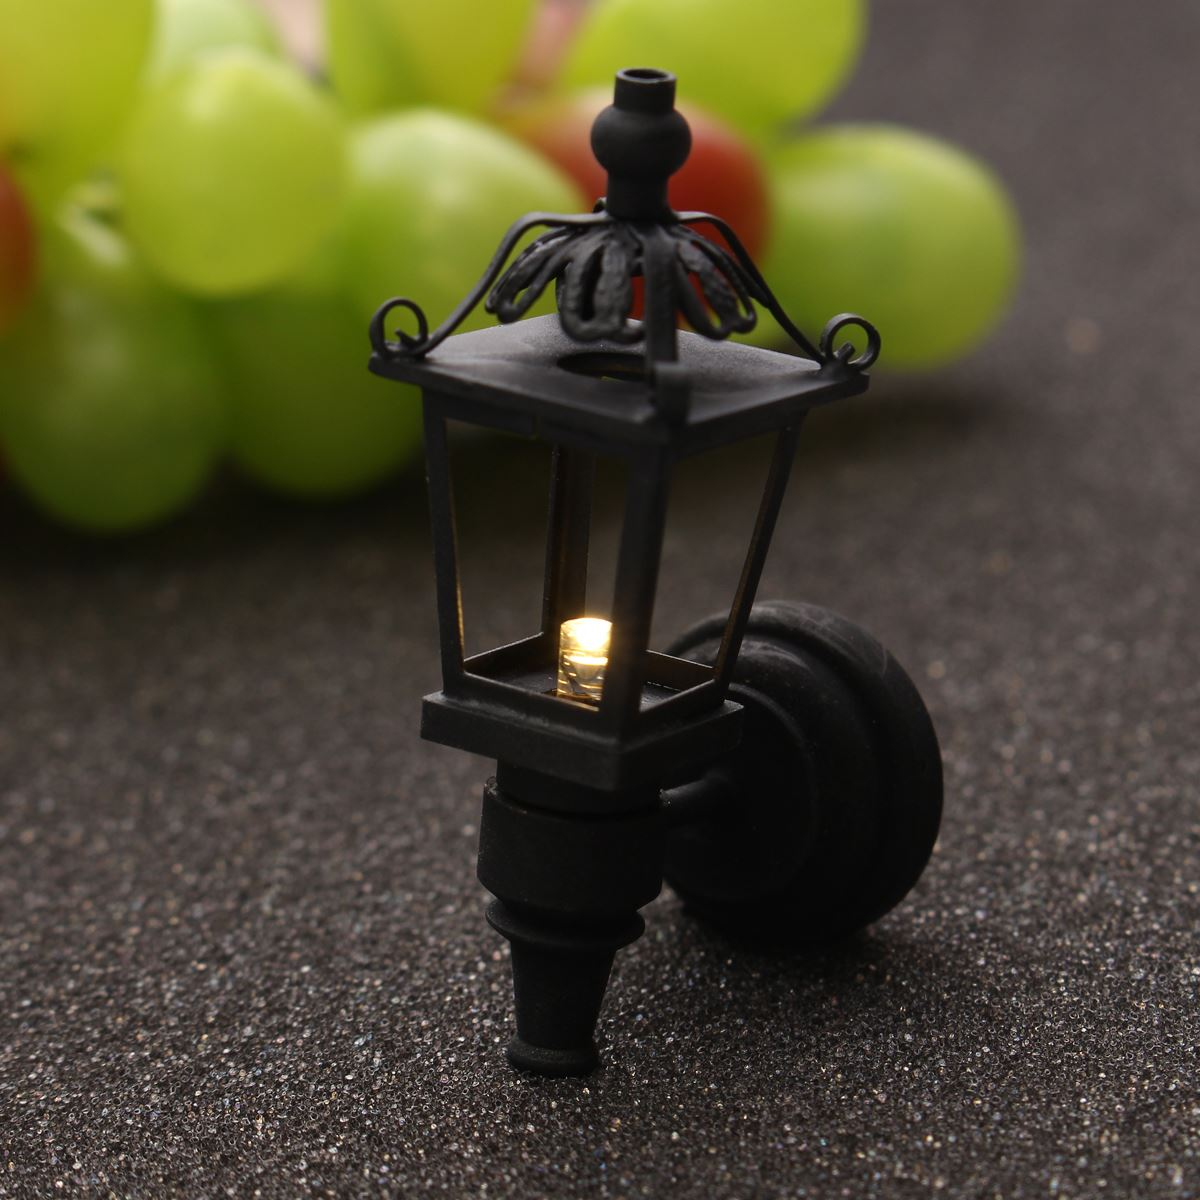 Miniatura Streetlight LED Electronic Products Landscape For Doll House Accessories Simulation Street Lamps DIY Decor Toys Gift ...